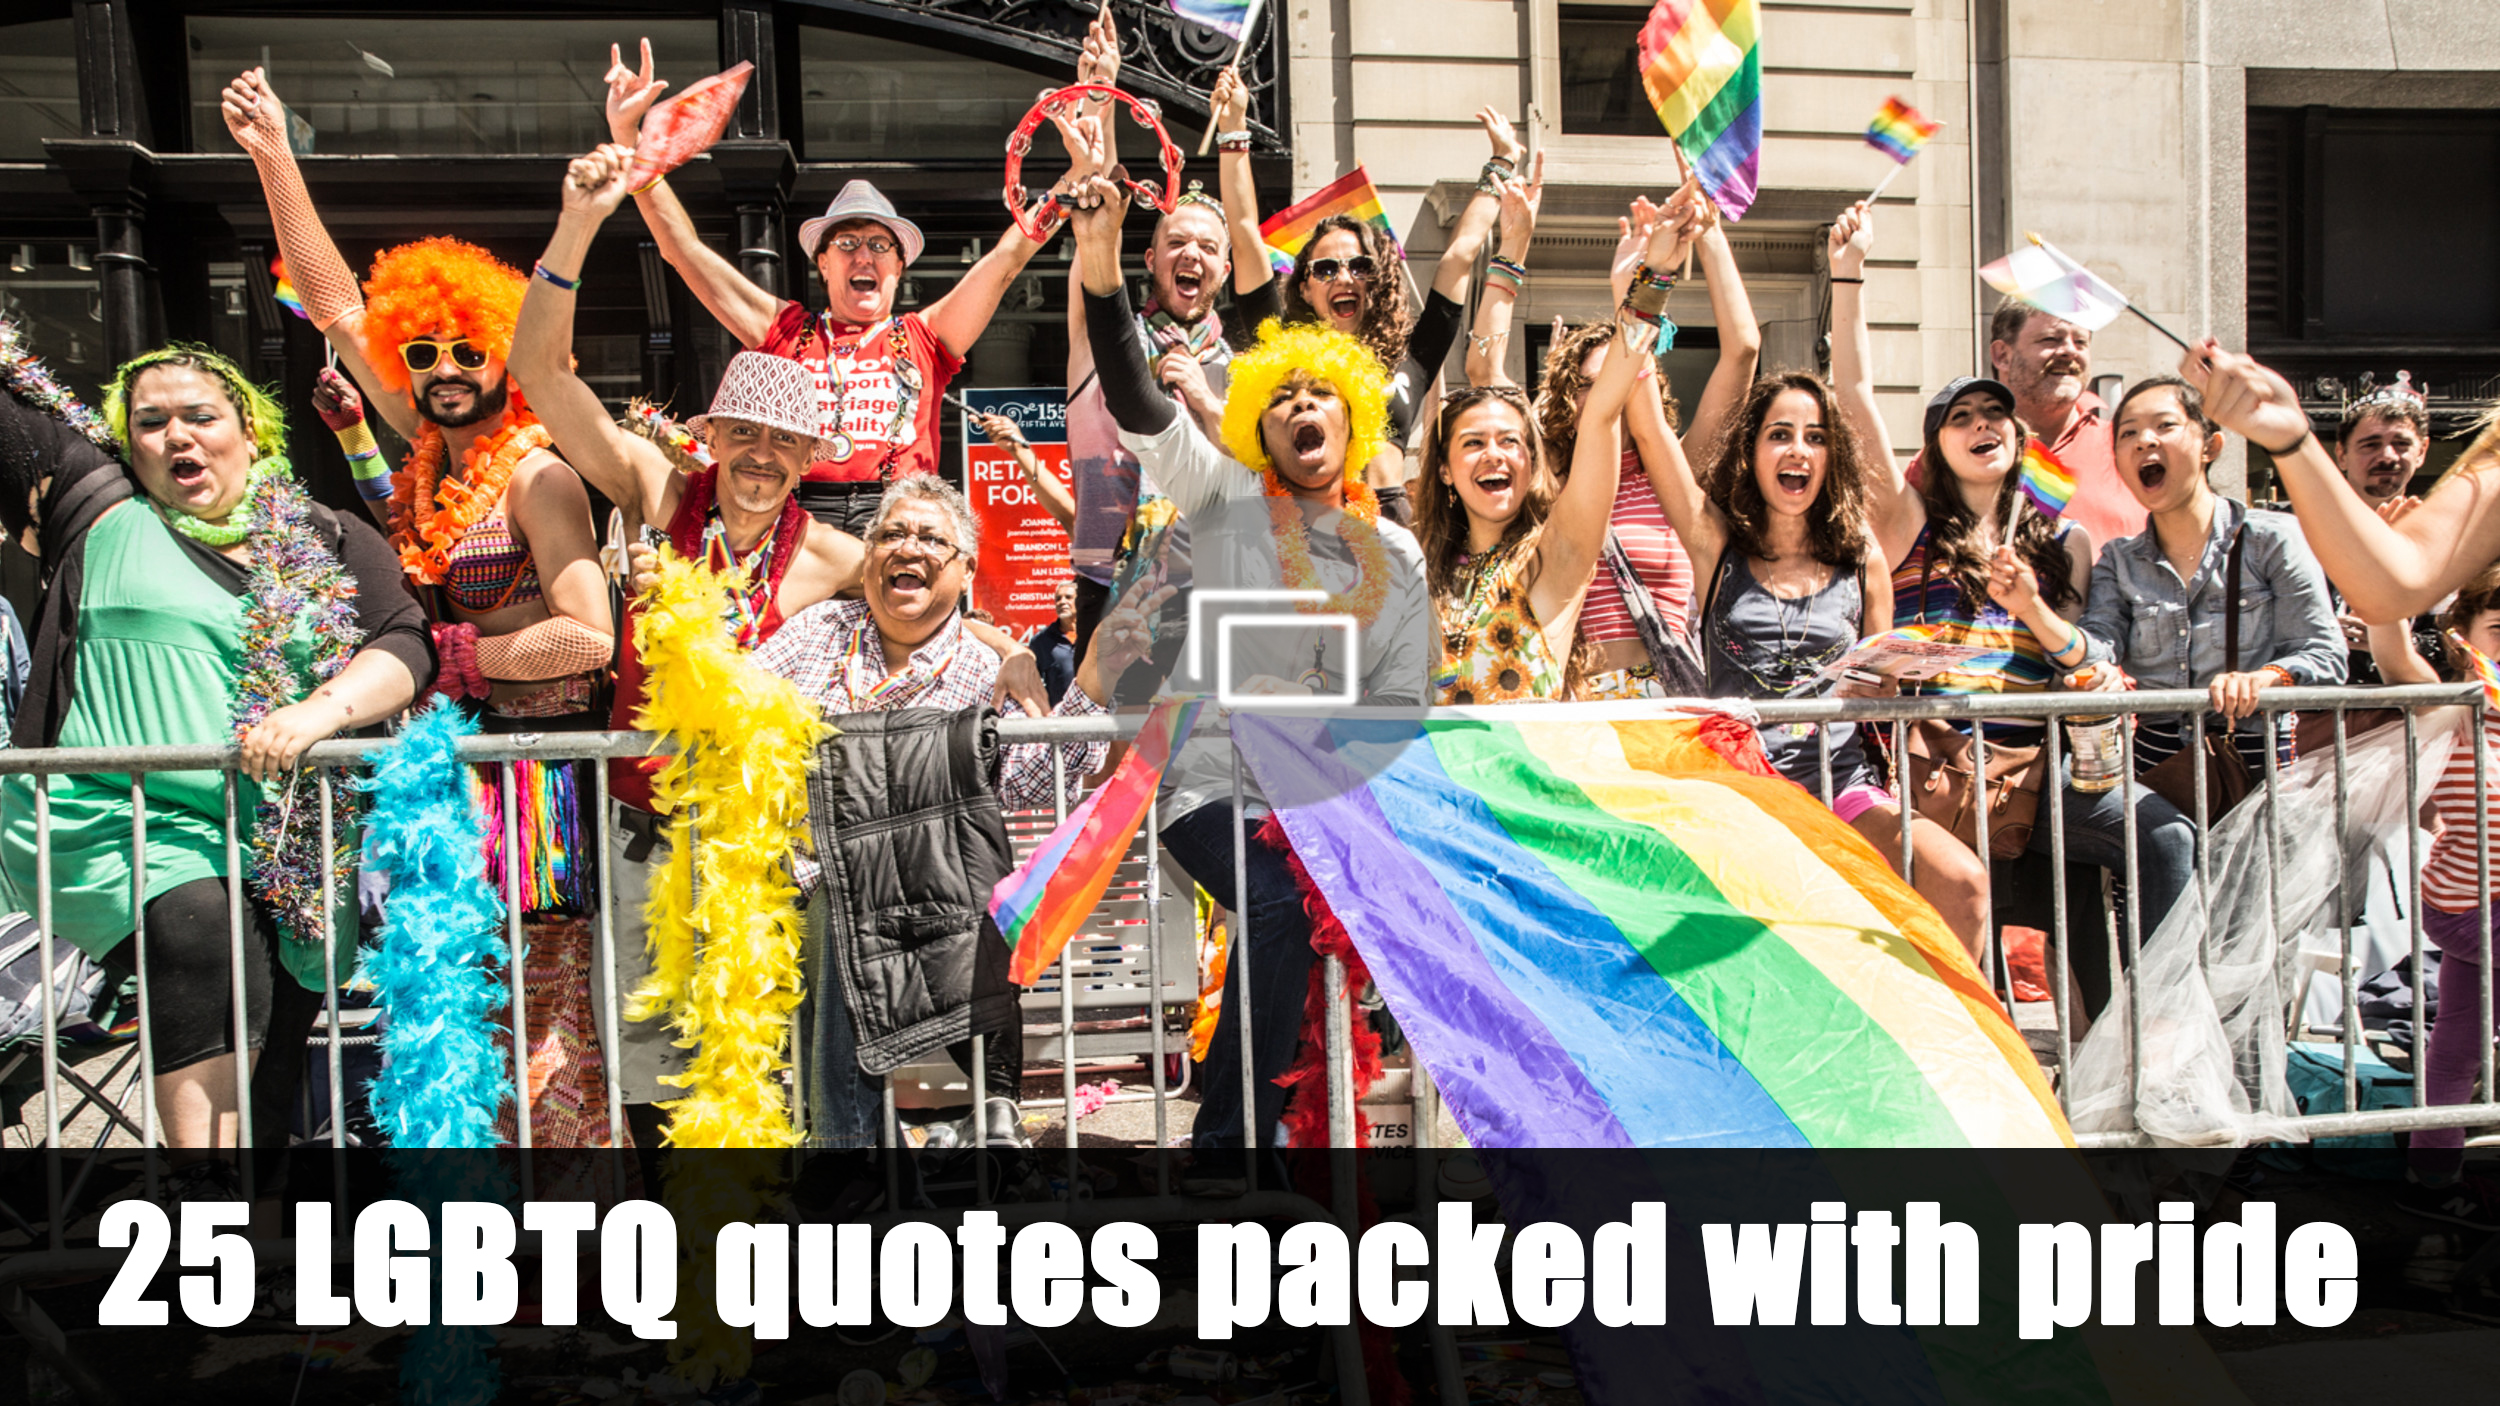 gay pride quotes